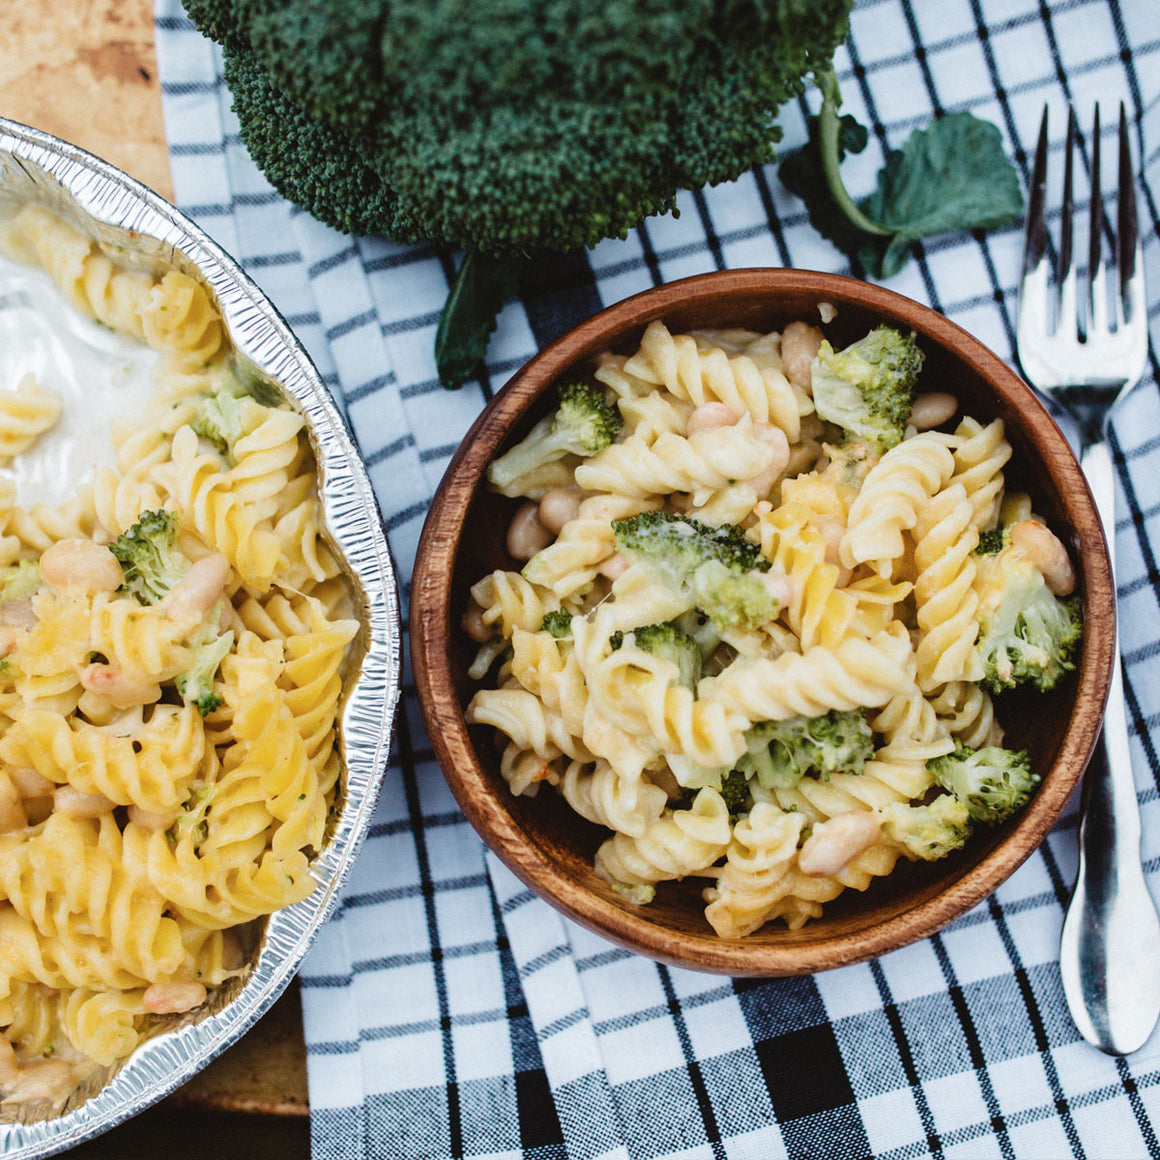 Rotini with gouda, broccoli and cannellini beans